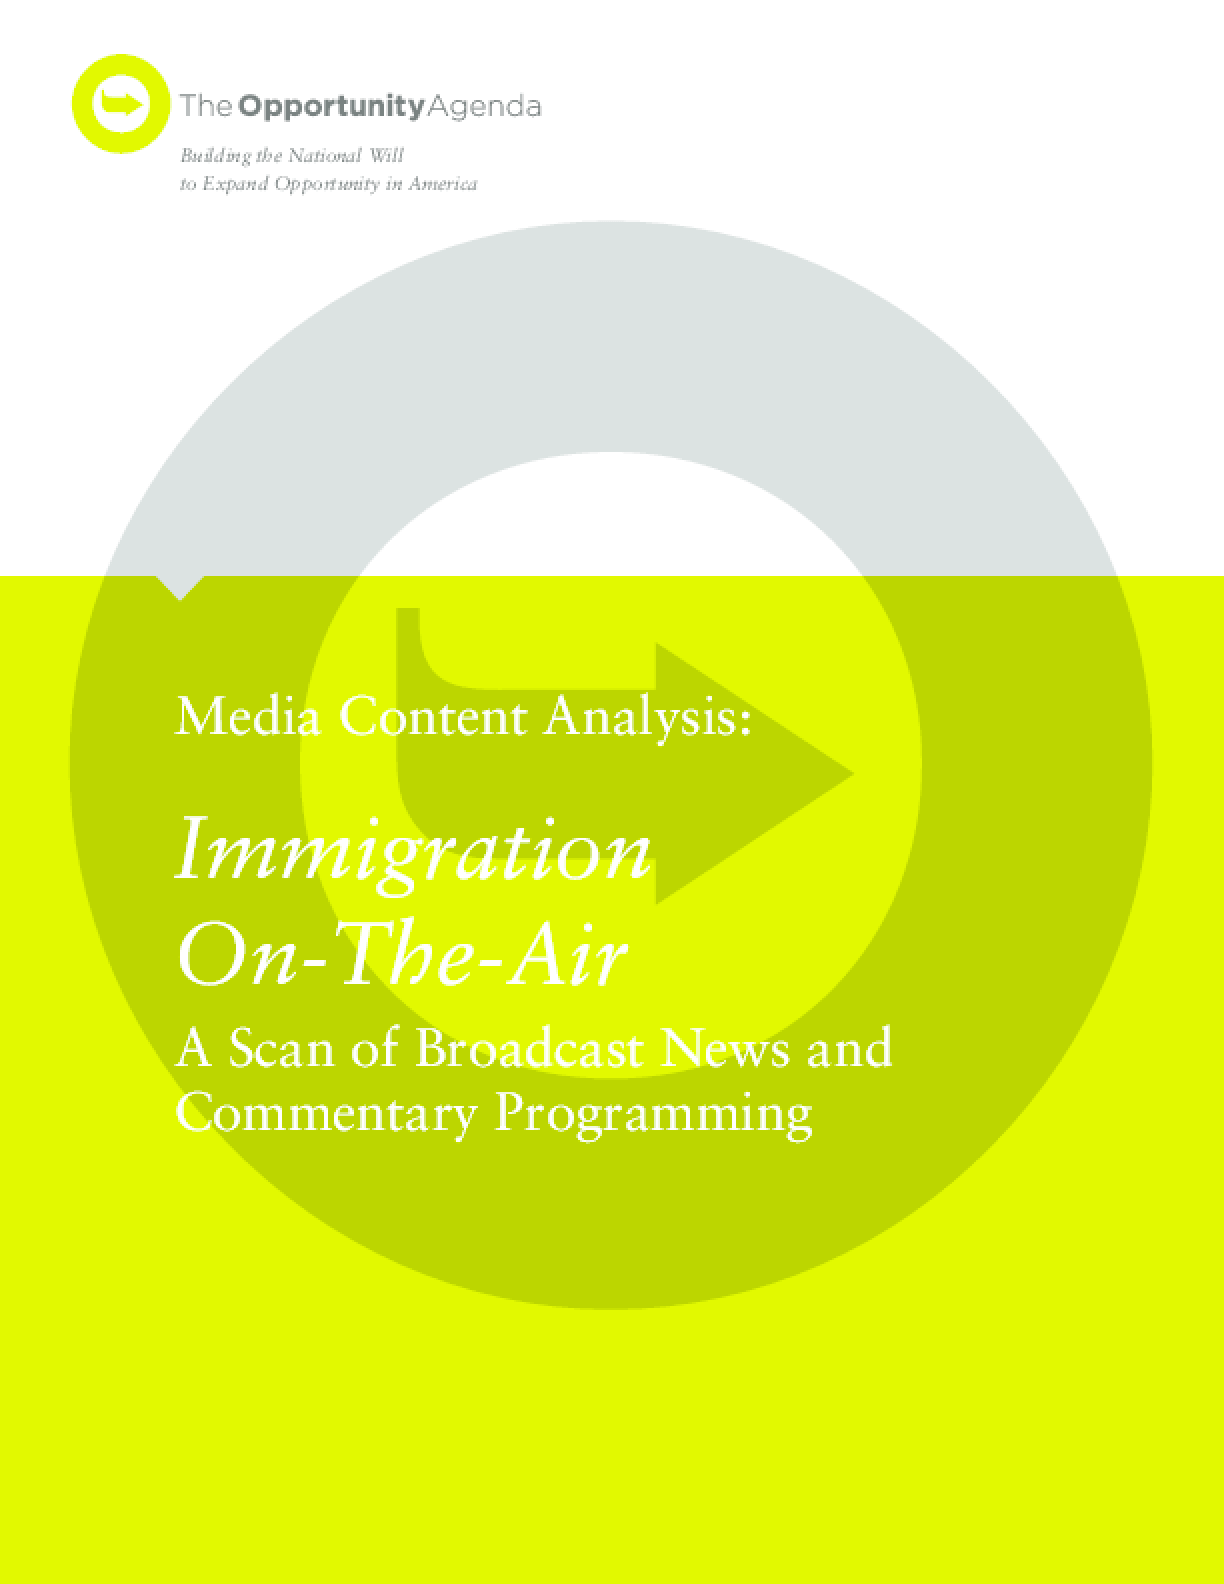 Immigration On-The-Air: A Scan of Broadcast News and Commentary Programming